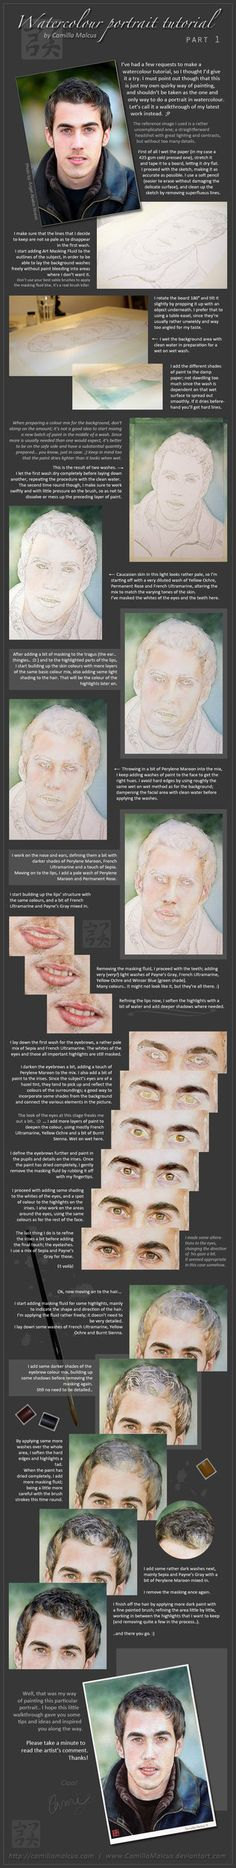 Watercolor Portrait Tutorial...